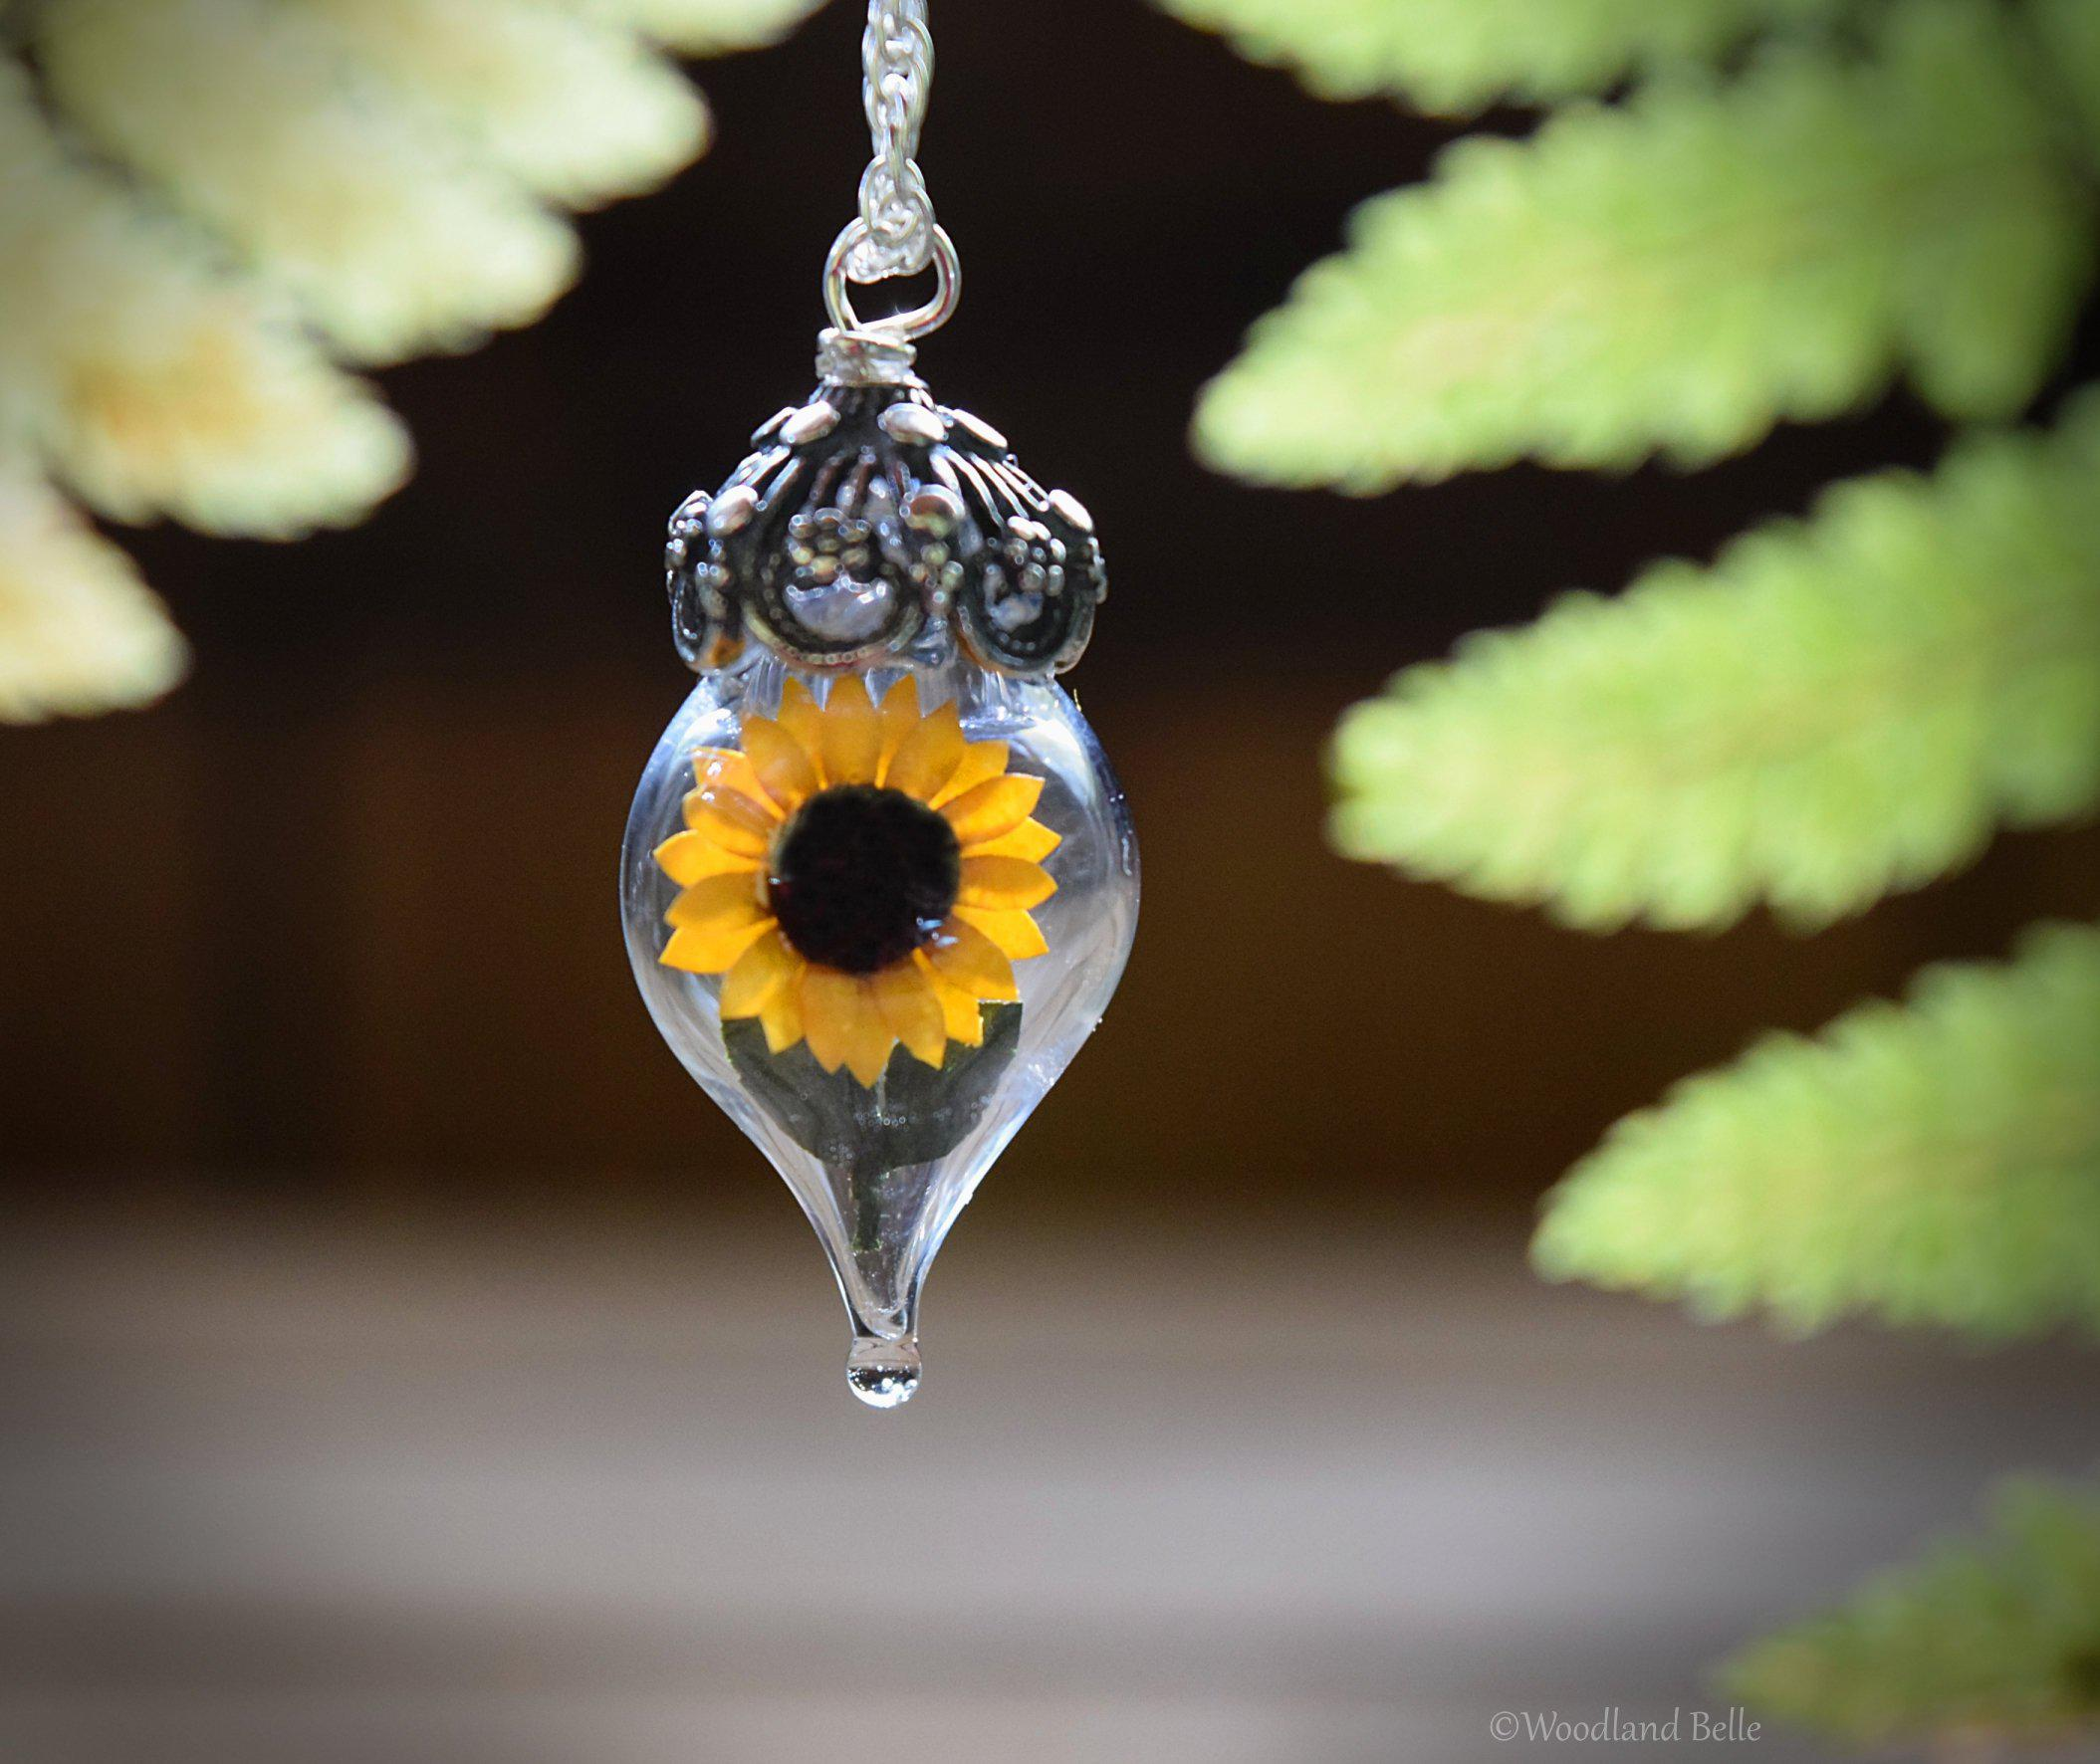 Sunflower Necklace - Silver Glass Yellow Flower Pendant - Personalized Jewelry Gift - Gold/Sterling Silver/Rose Gold - by Woodland Belle